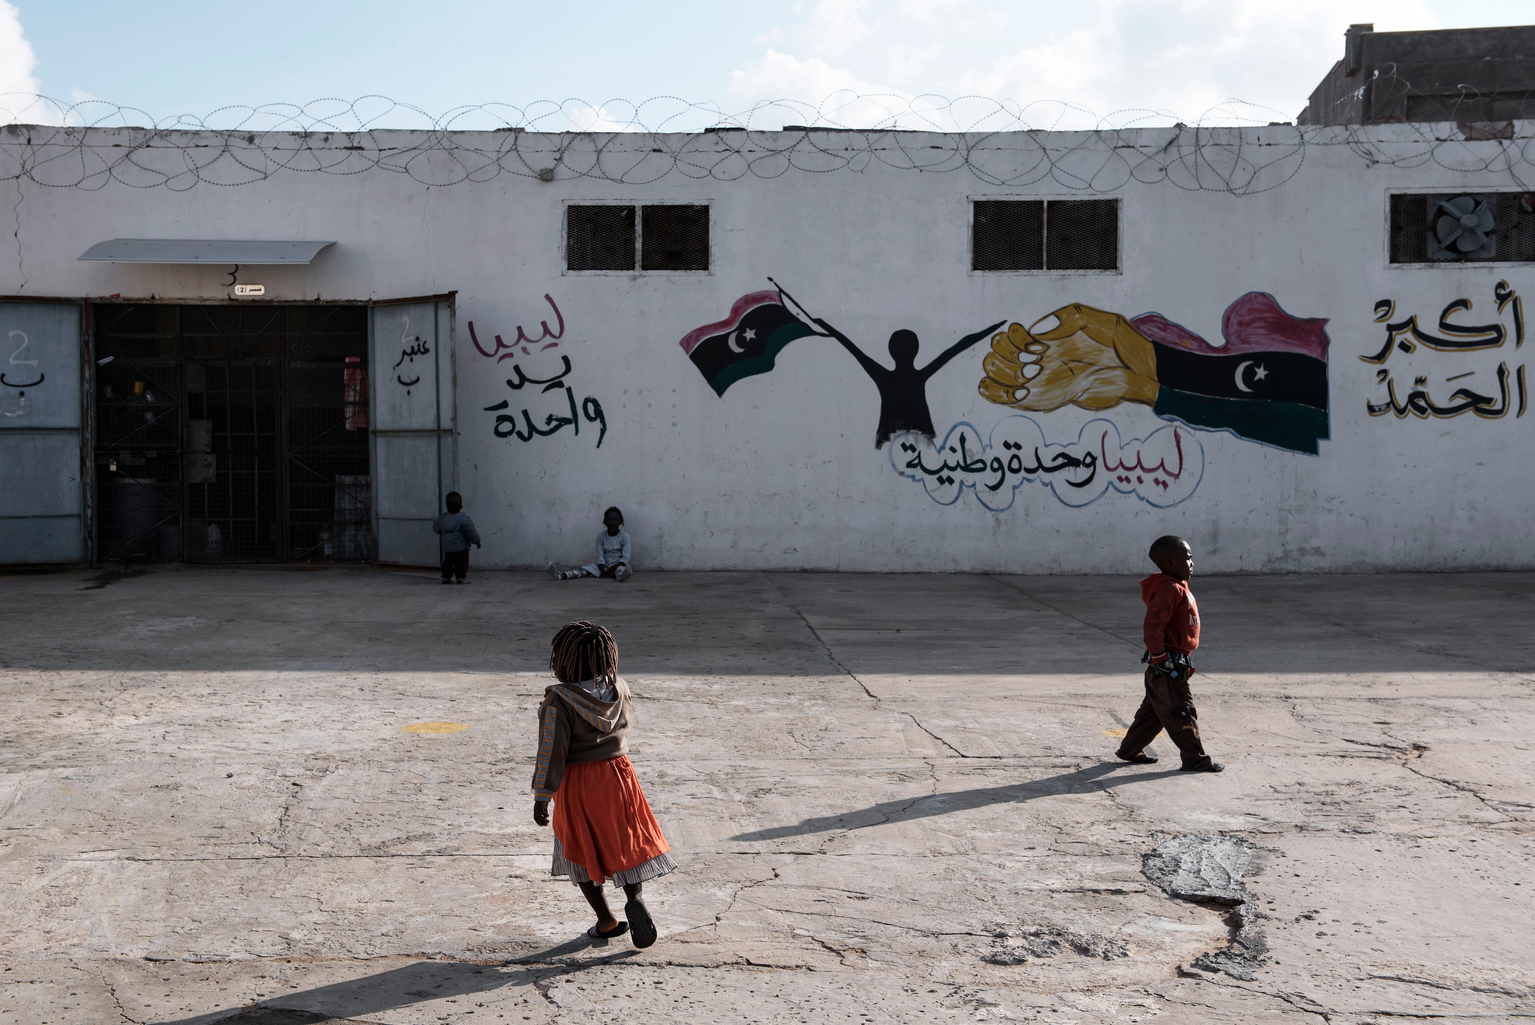 Children walk in the courtyard outside of one of the detention centres.